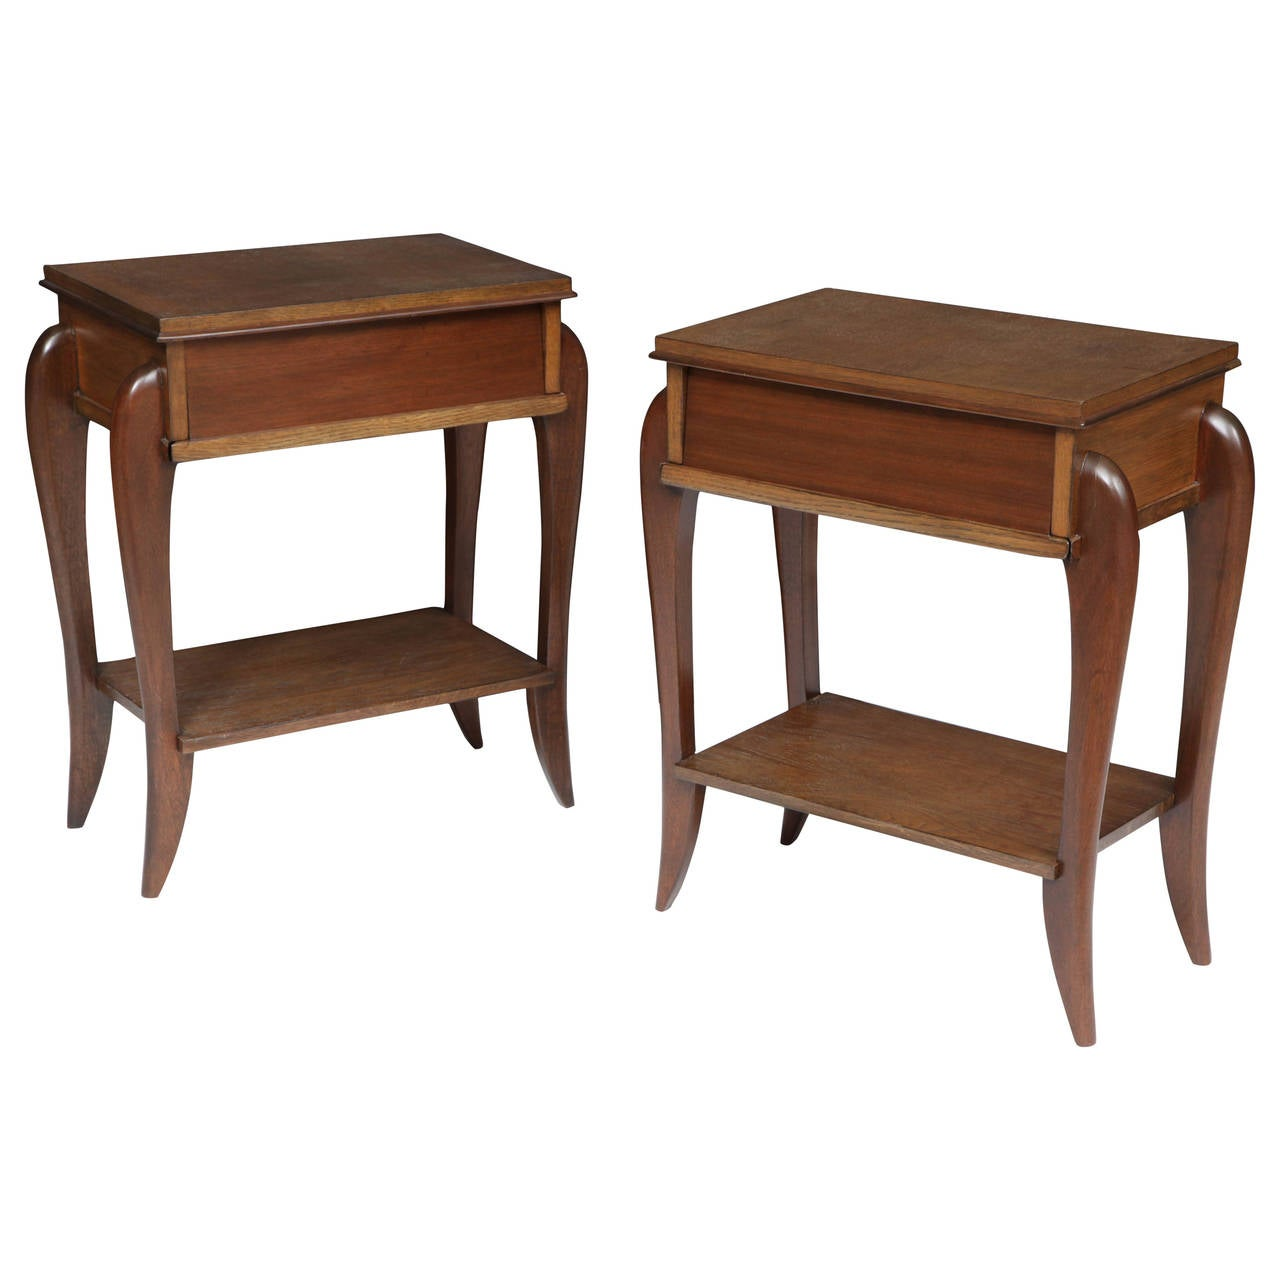 Pair of 1950s French Nightstands with Drawer and Shelf